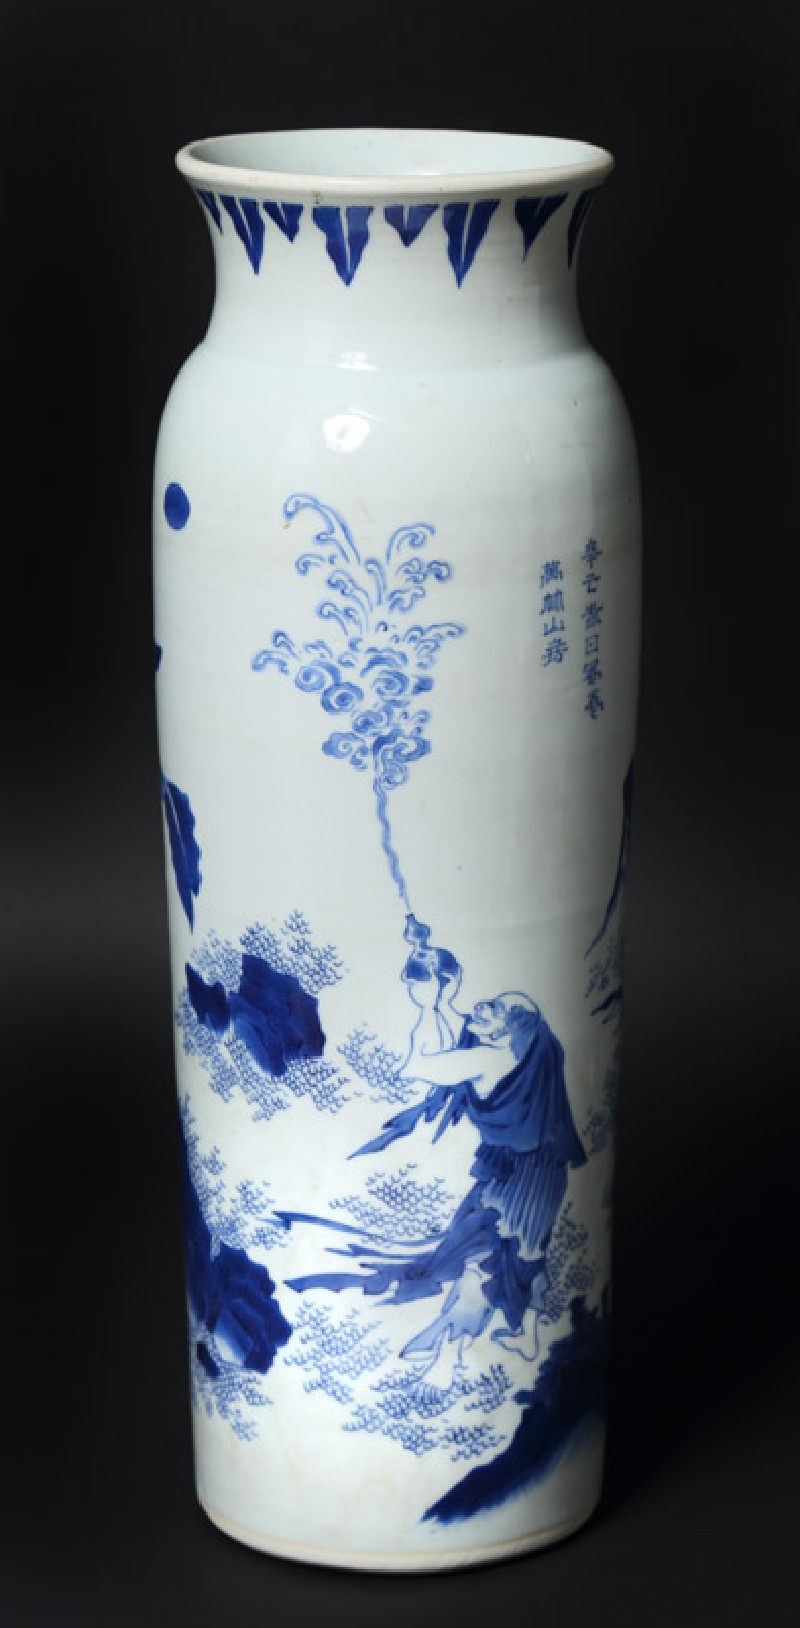 Blue-and-white vase with figures of immortals